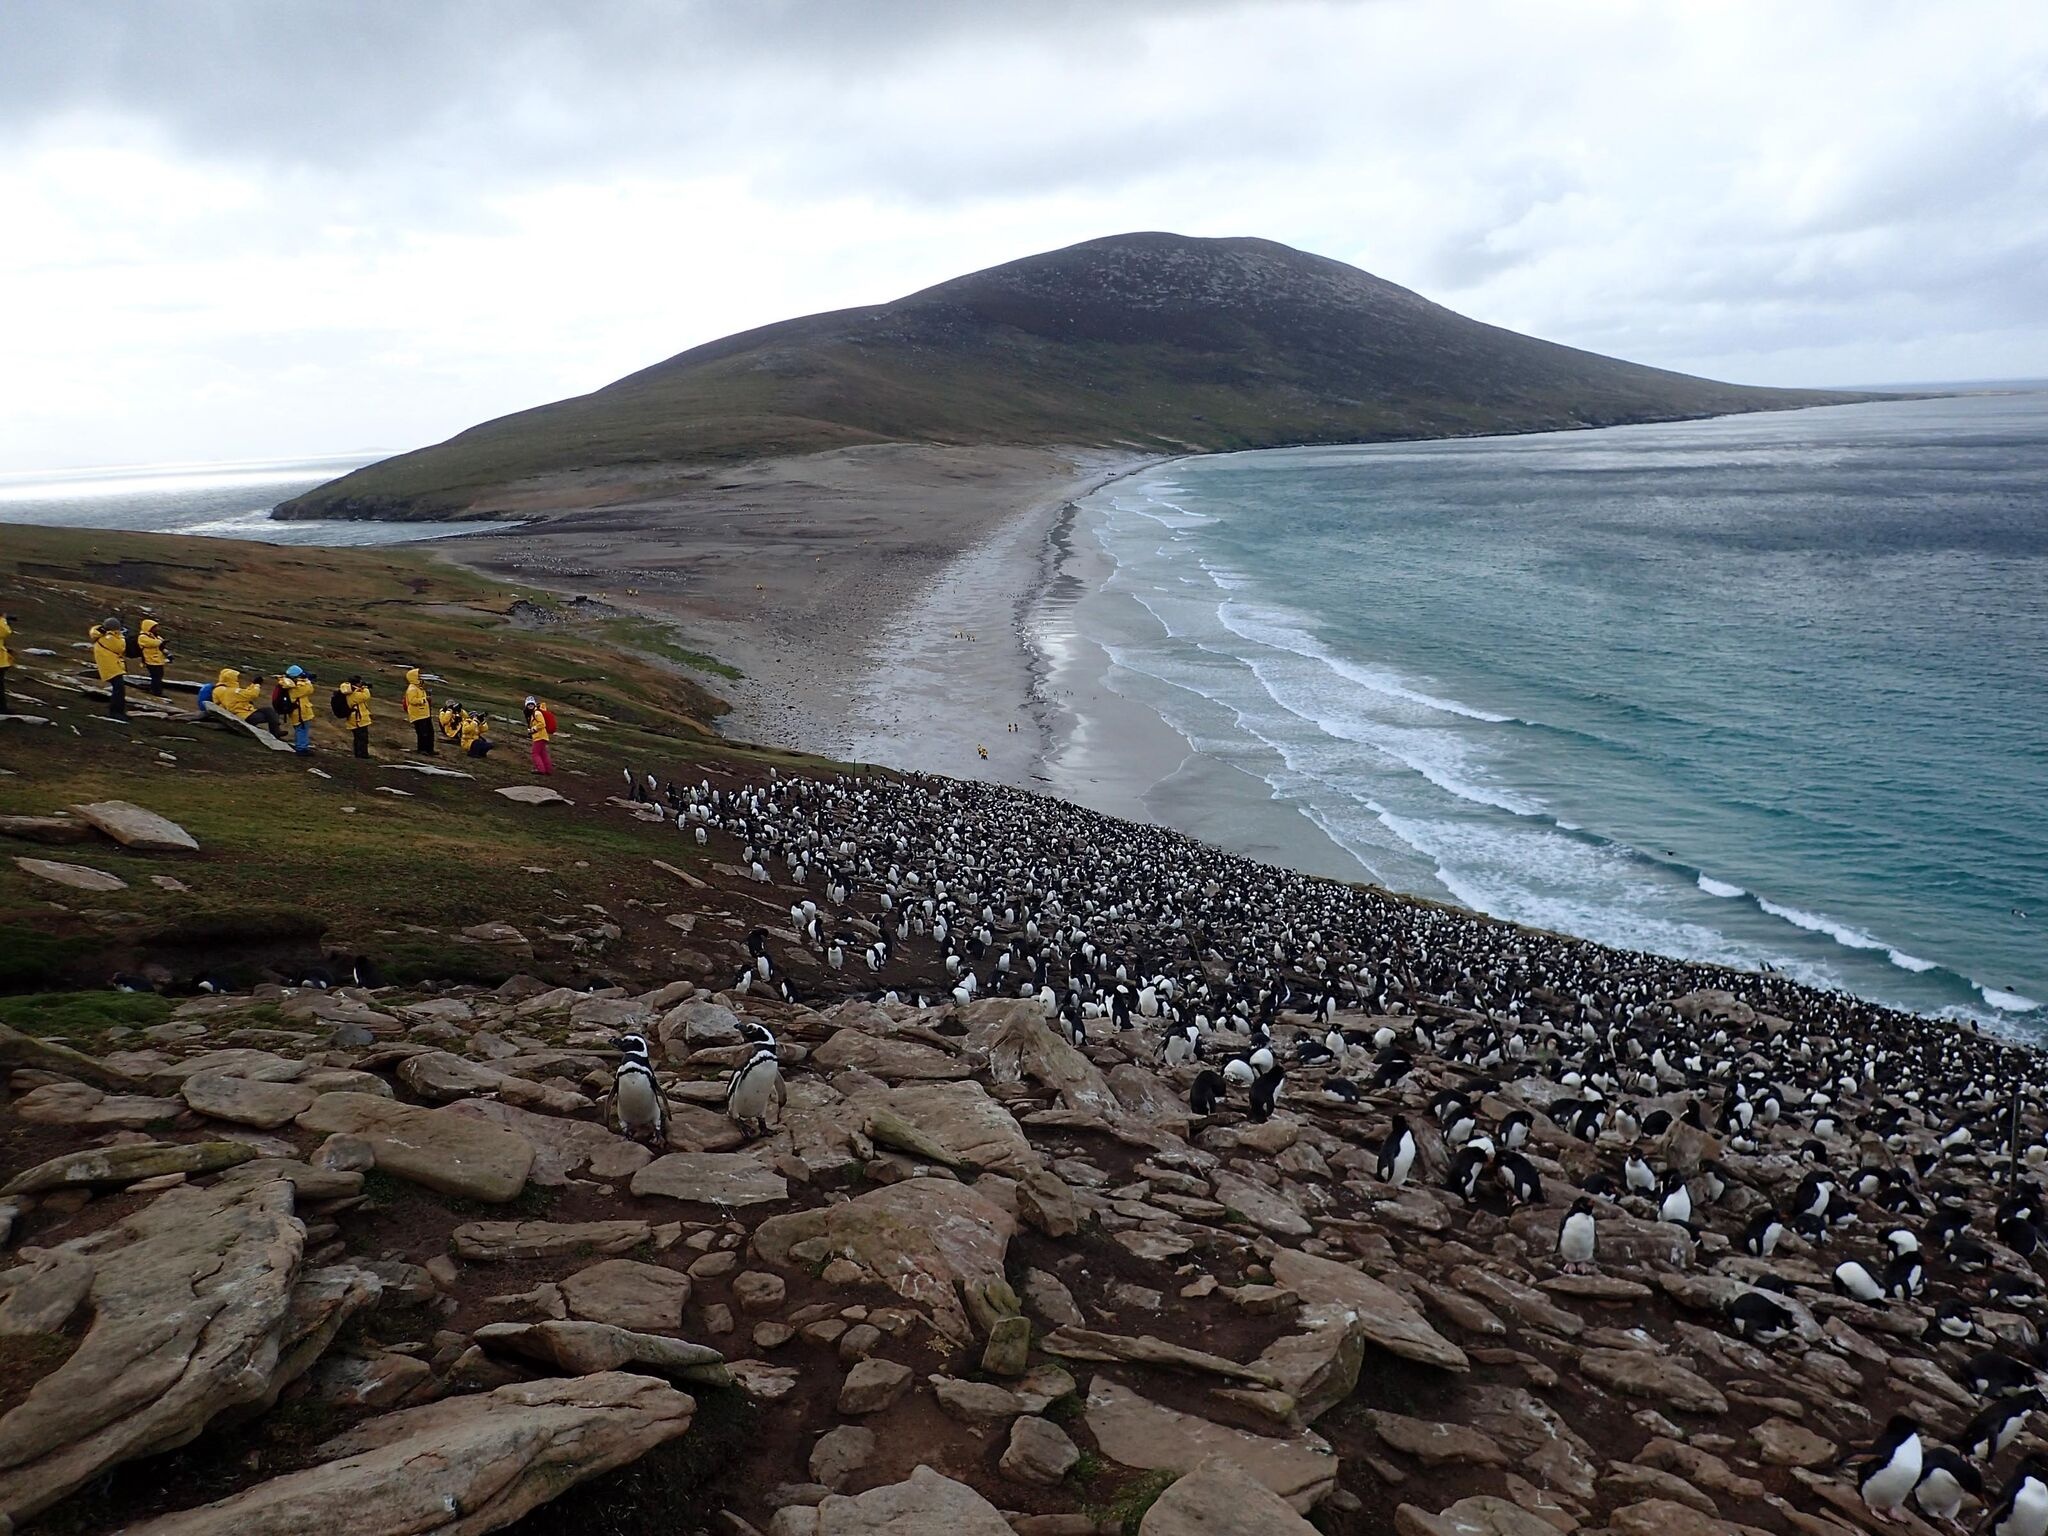 View from top of colony at Saunders Island